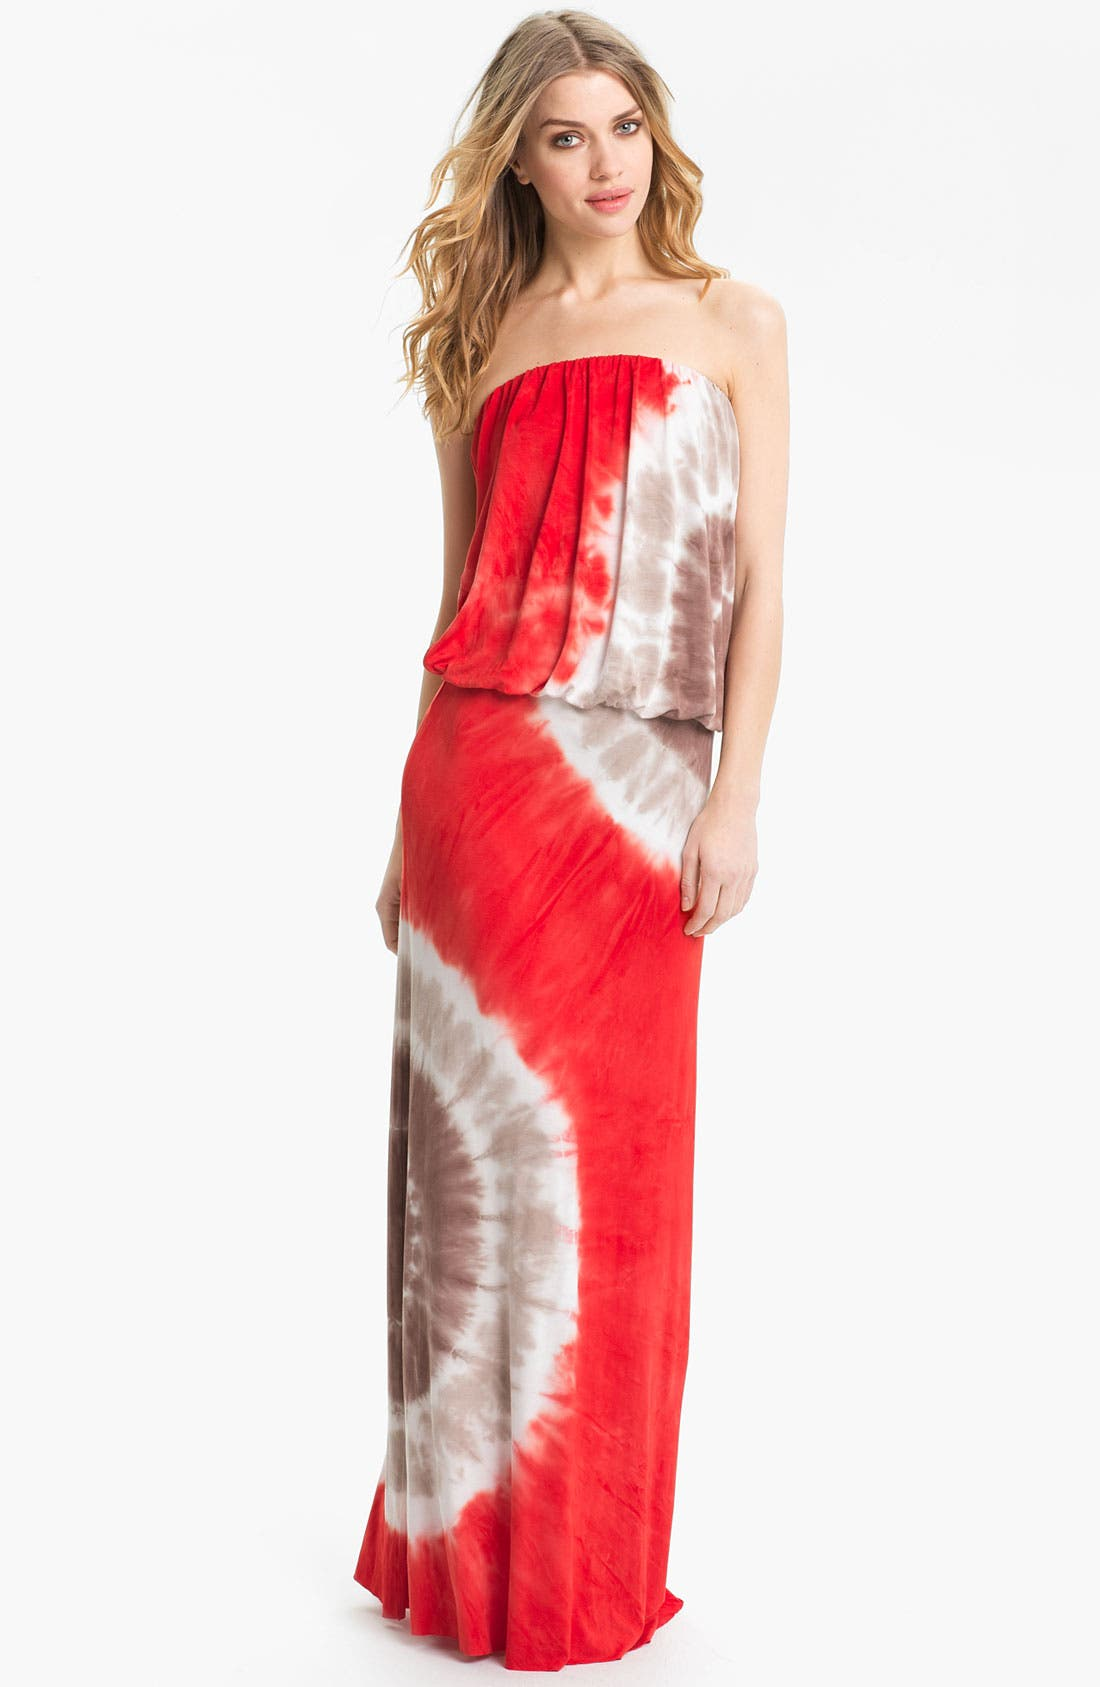 Alternate Image 1 Selected - Young, Fabulous & Broke 'Sydney' Strapless Maxi Dress